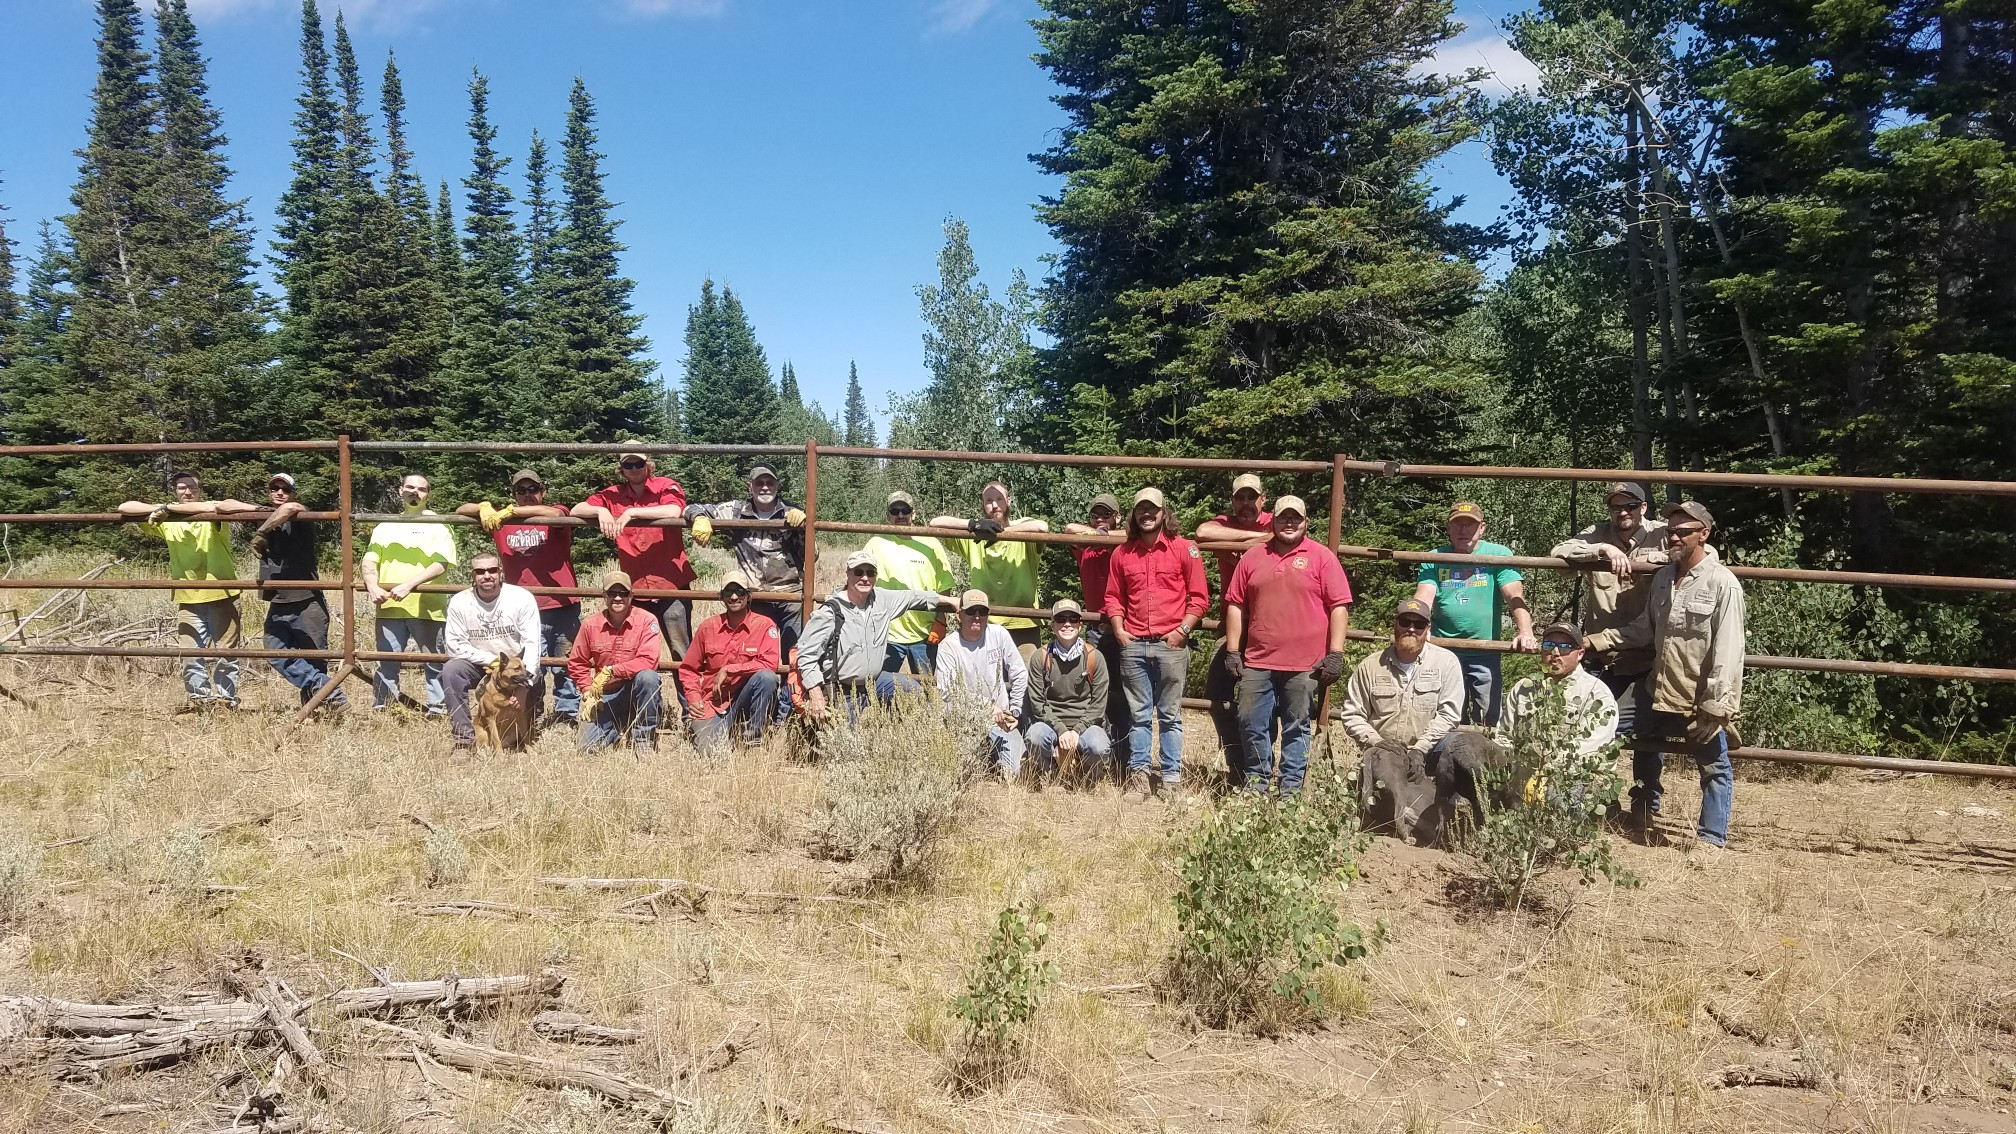 Habitat Project on Little Mountain Completed With the Help of Many